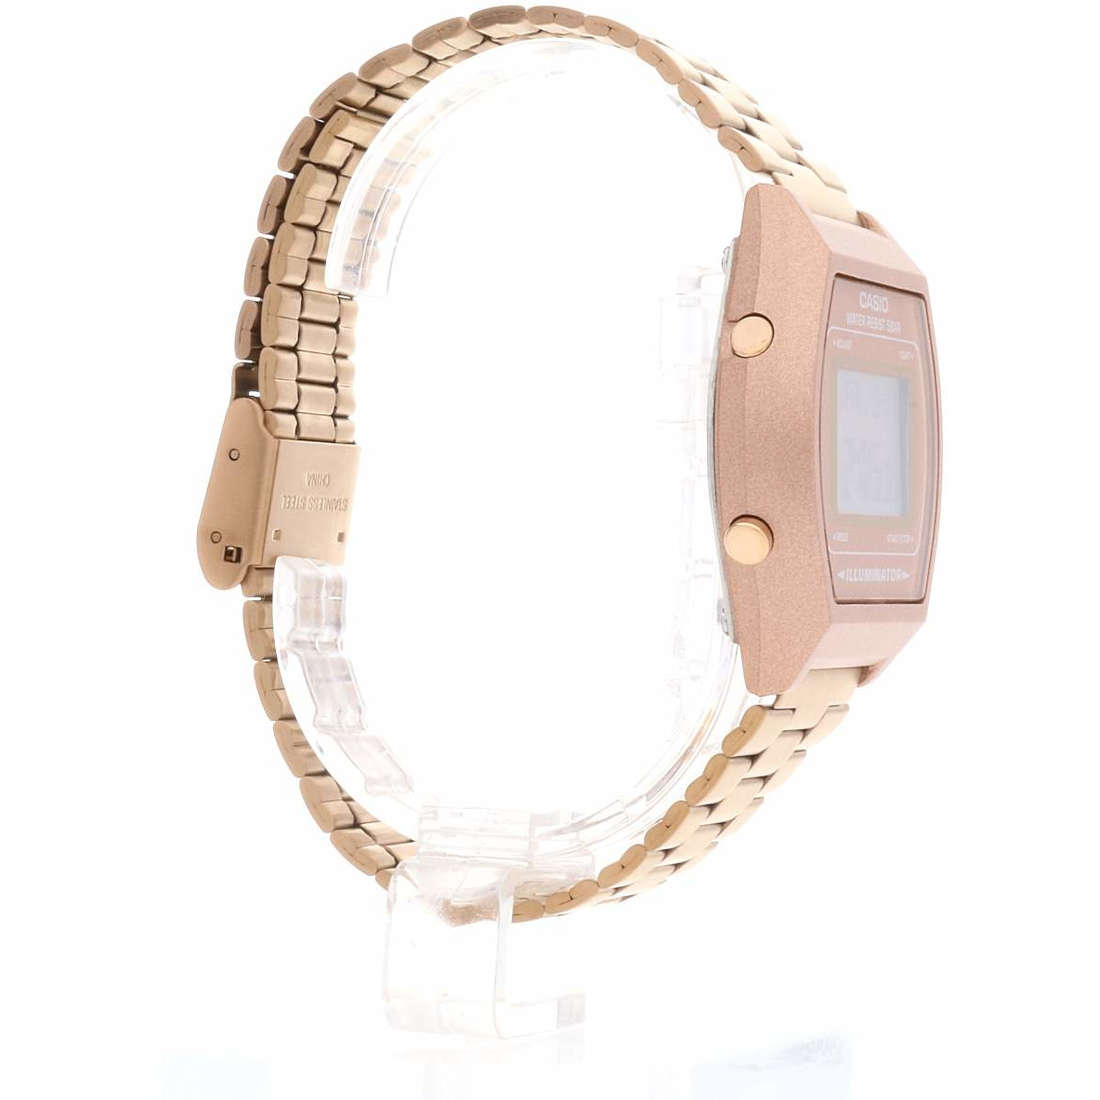 acquista orologi donna Casio B640WC-5AEF